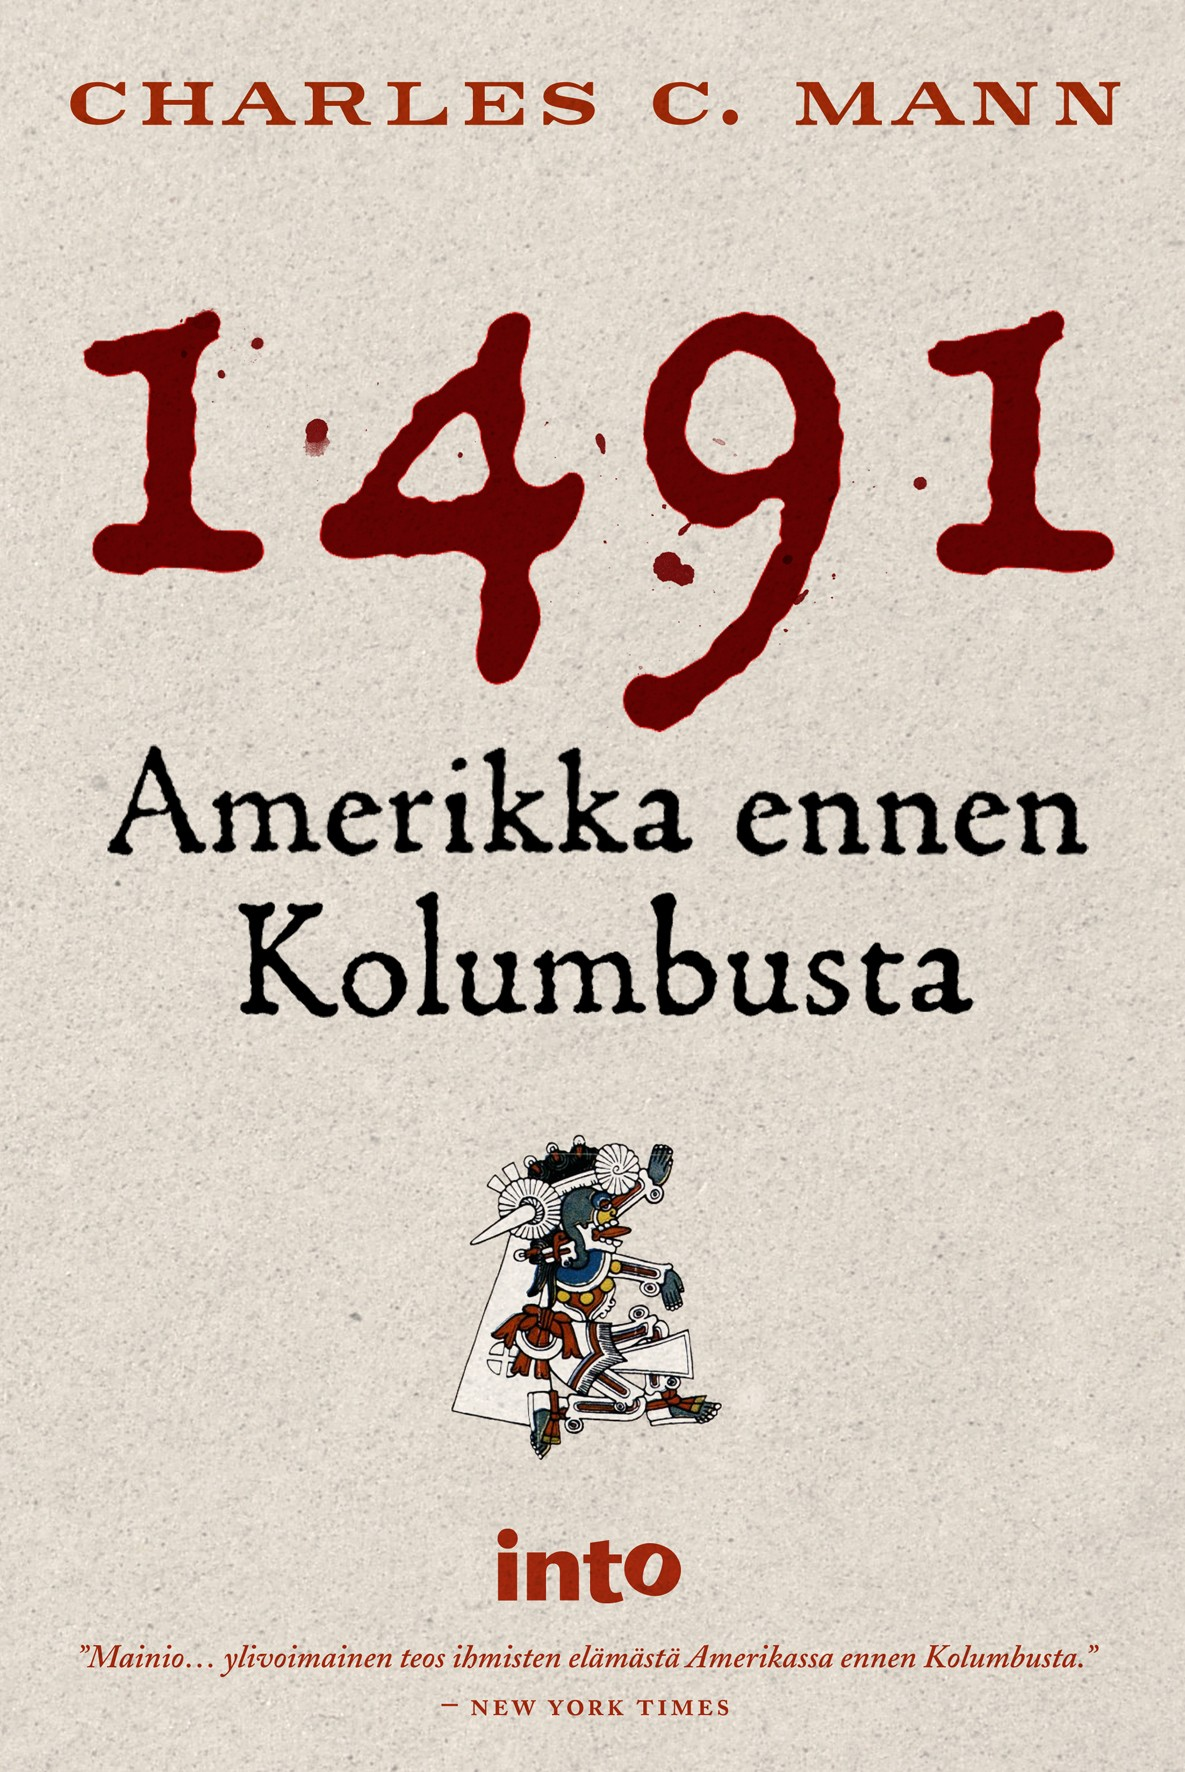 1491 by charles c mann Charles mann begins his book with a section describing holmberg's mistake which basically assumes that native american's lived in an eternal, unhistoried.